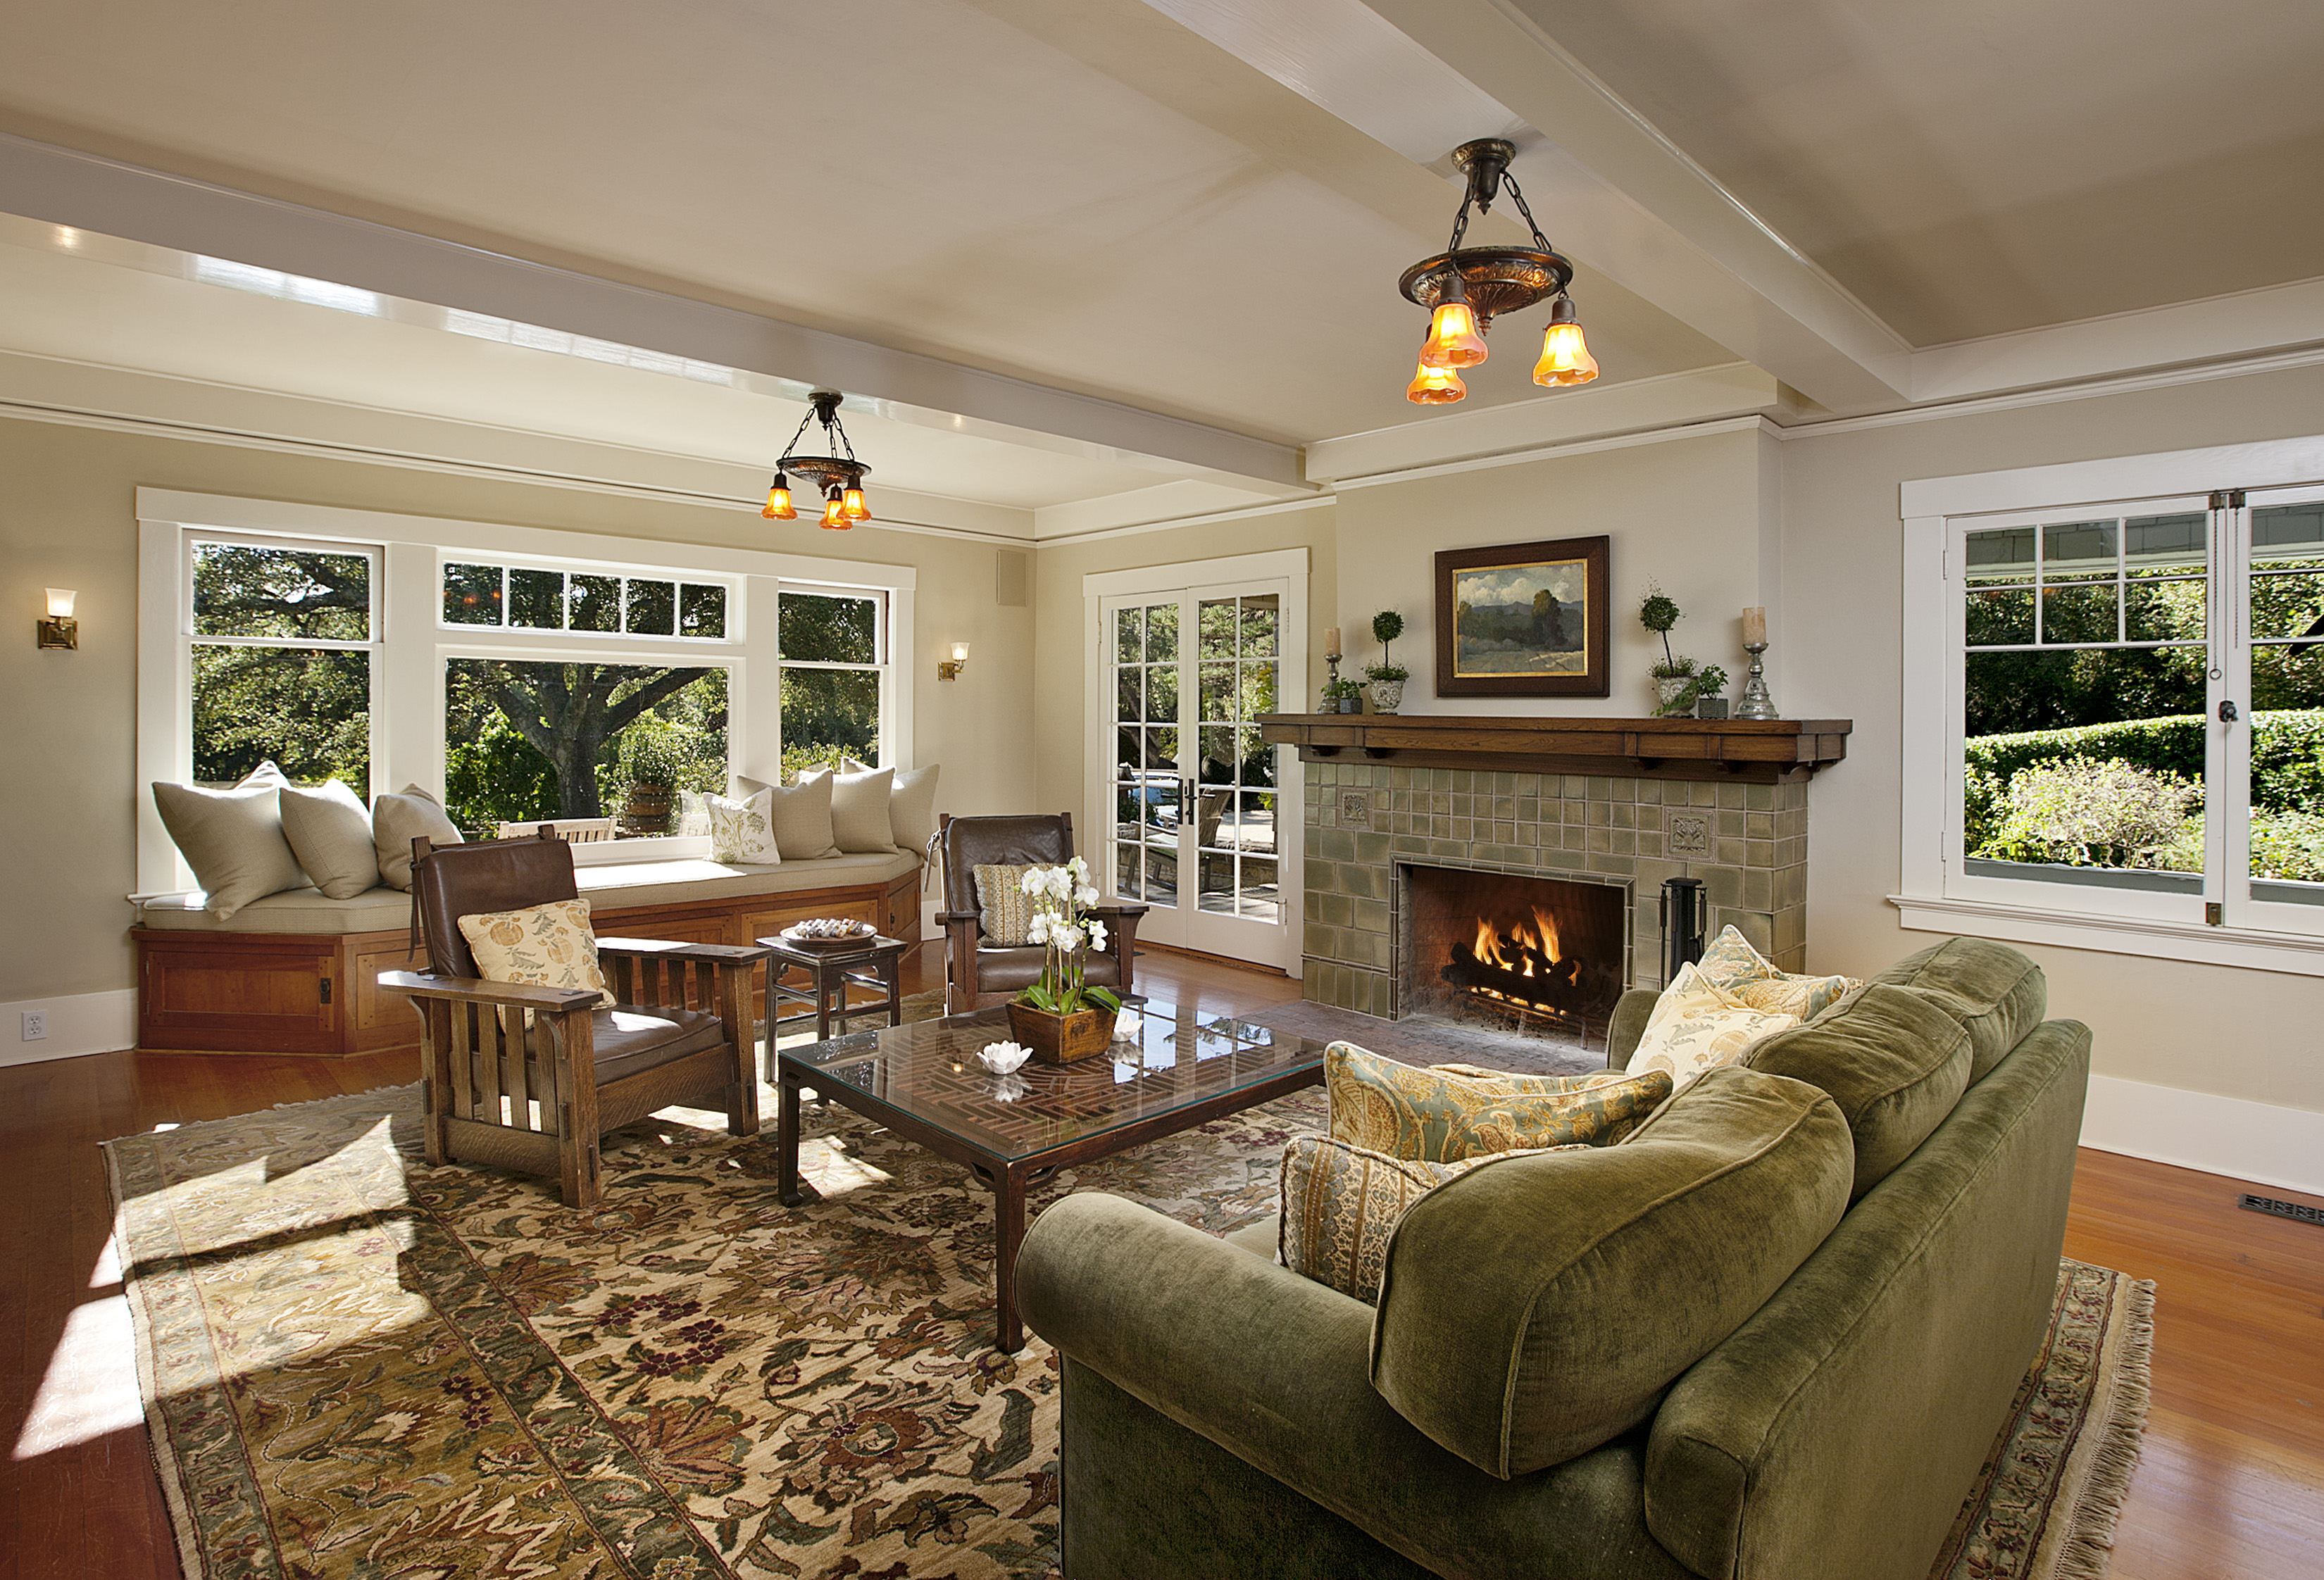 Popular home styles for 2012 montecito real estate for Living room decor styles